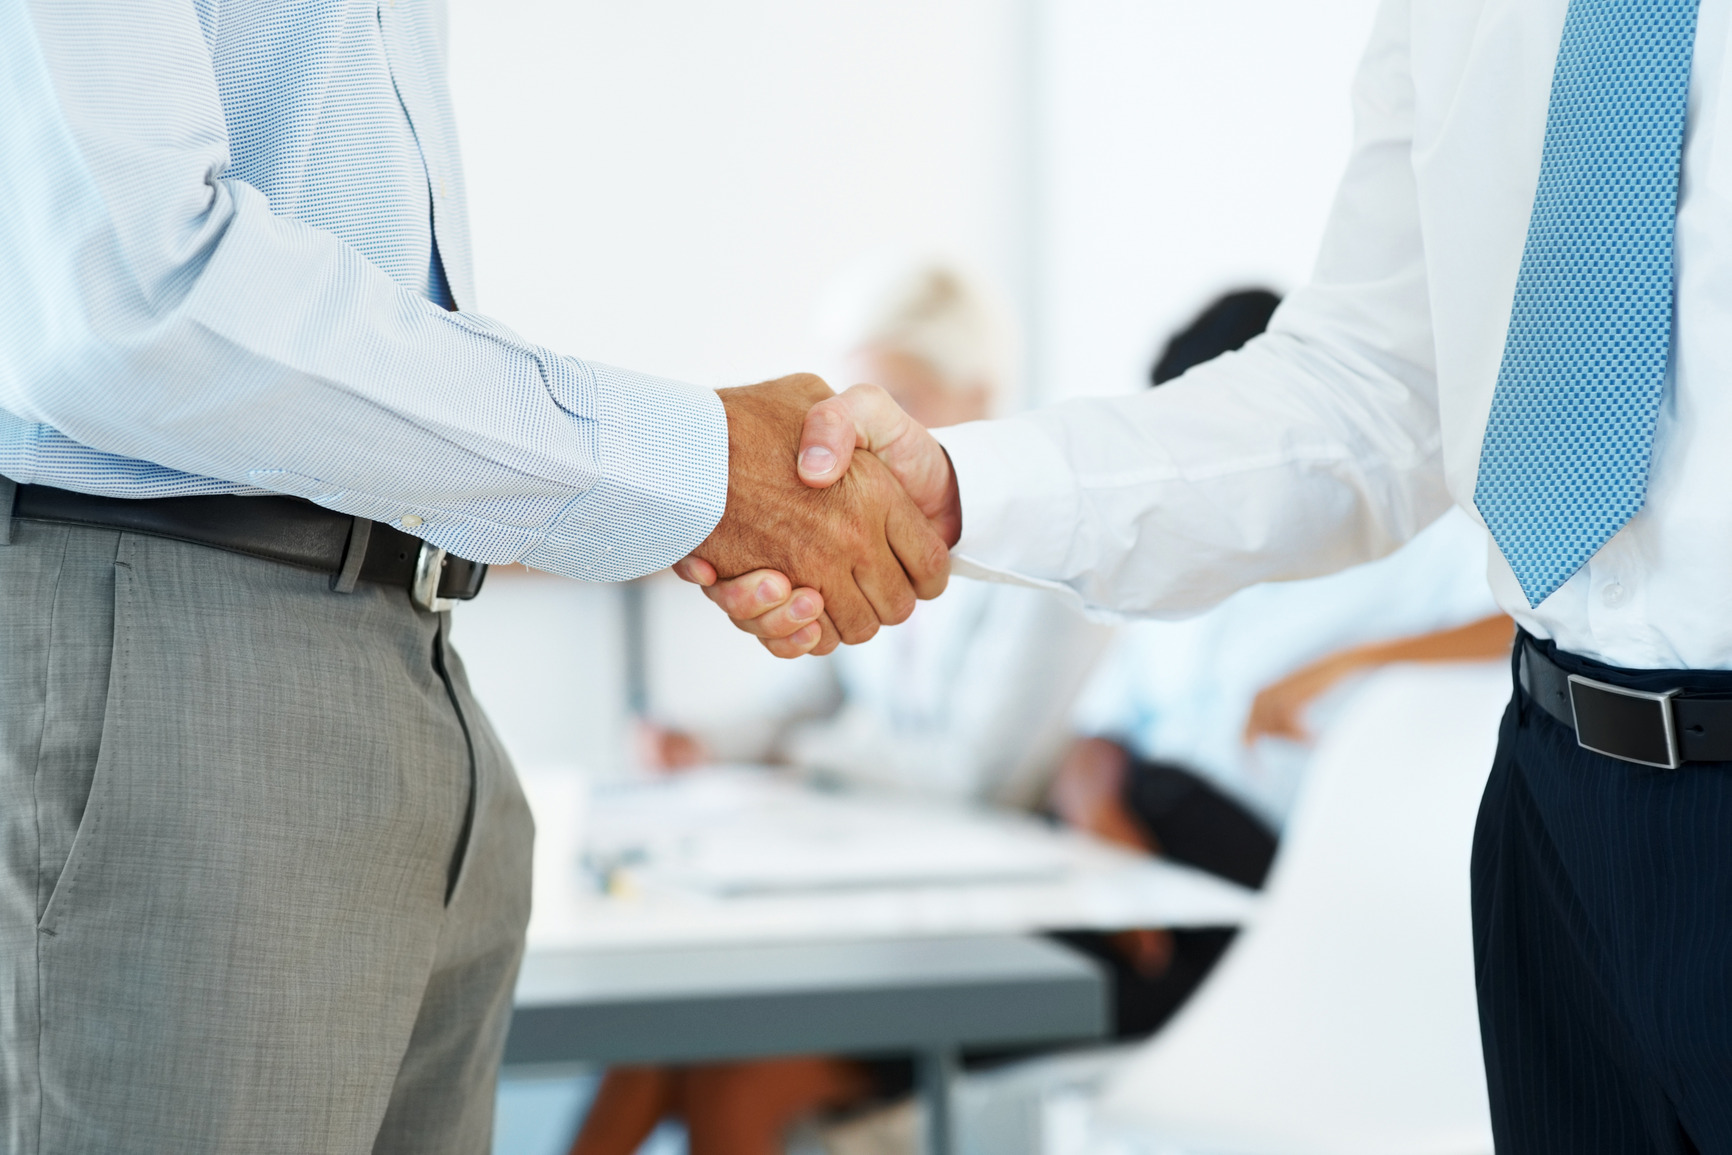 photodune-645934-handshake-of-business-partners-after-striking-deal-m